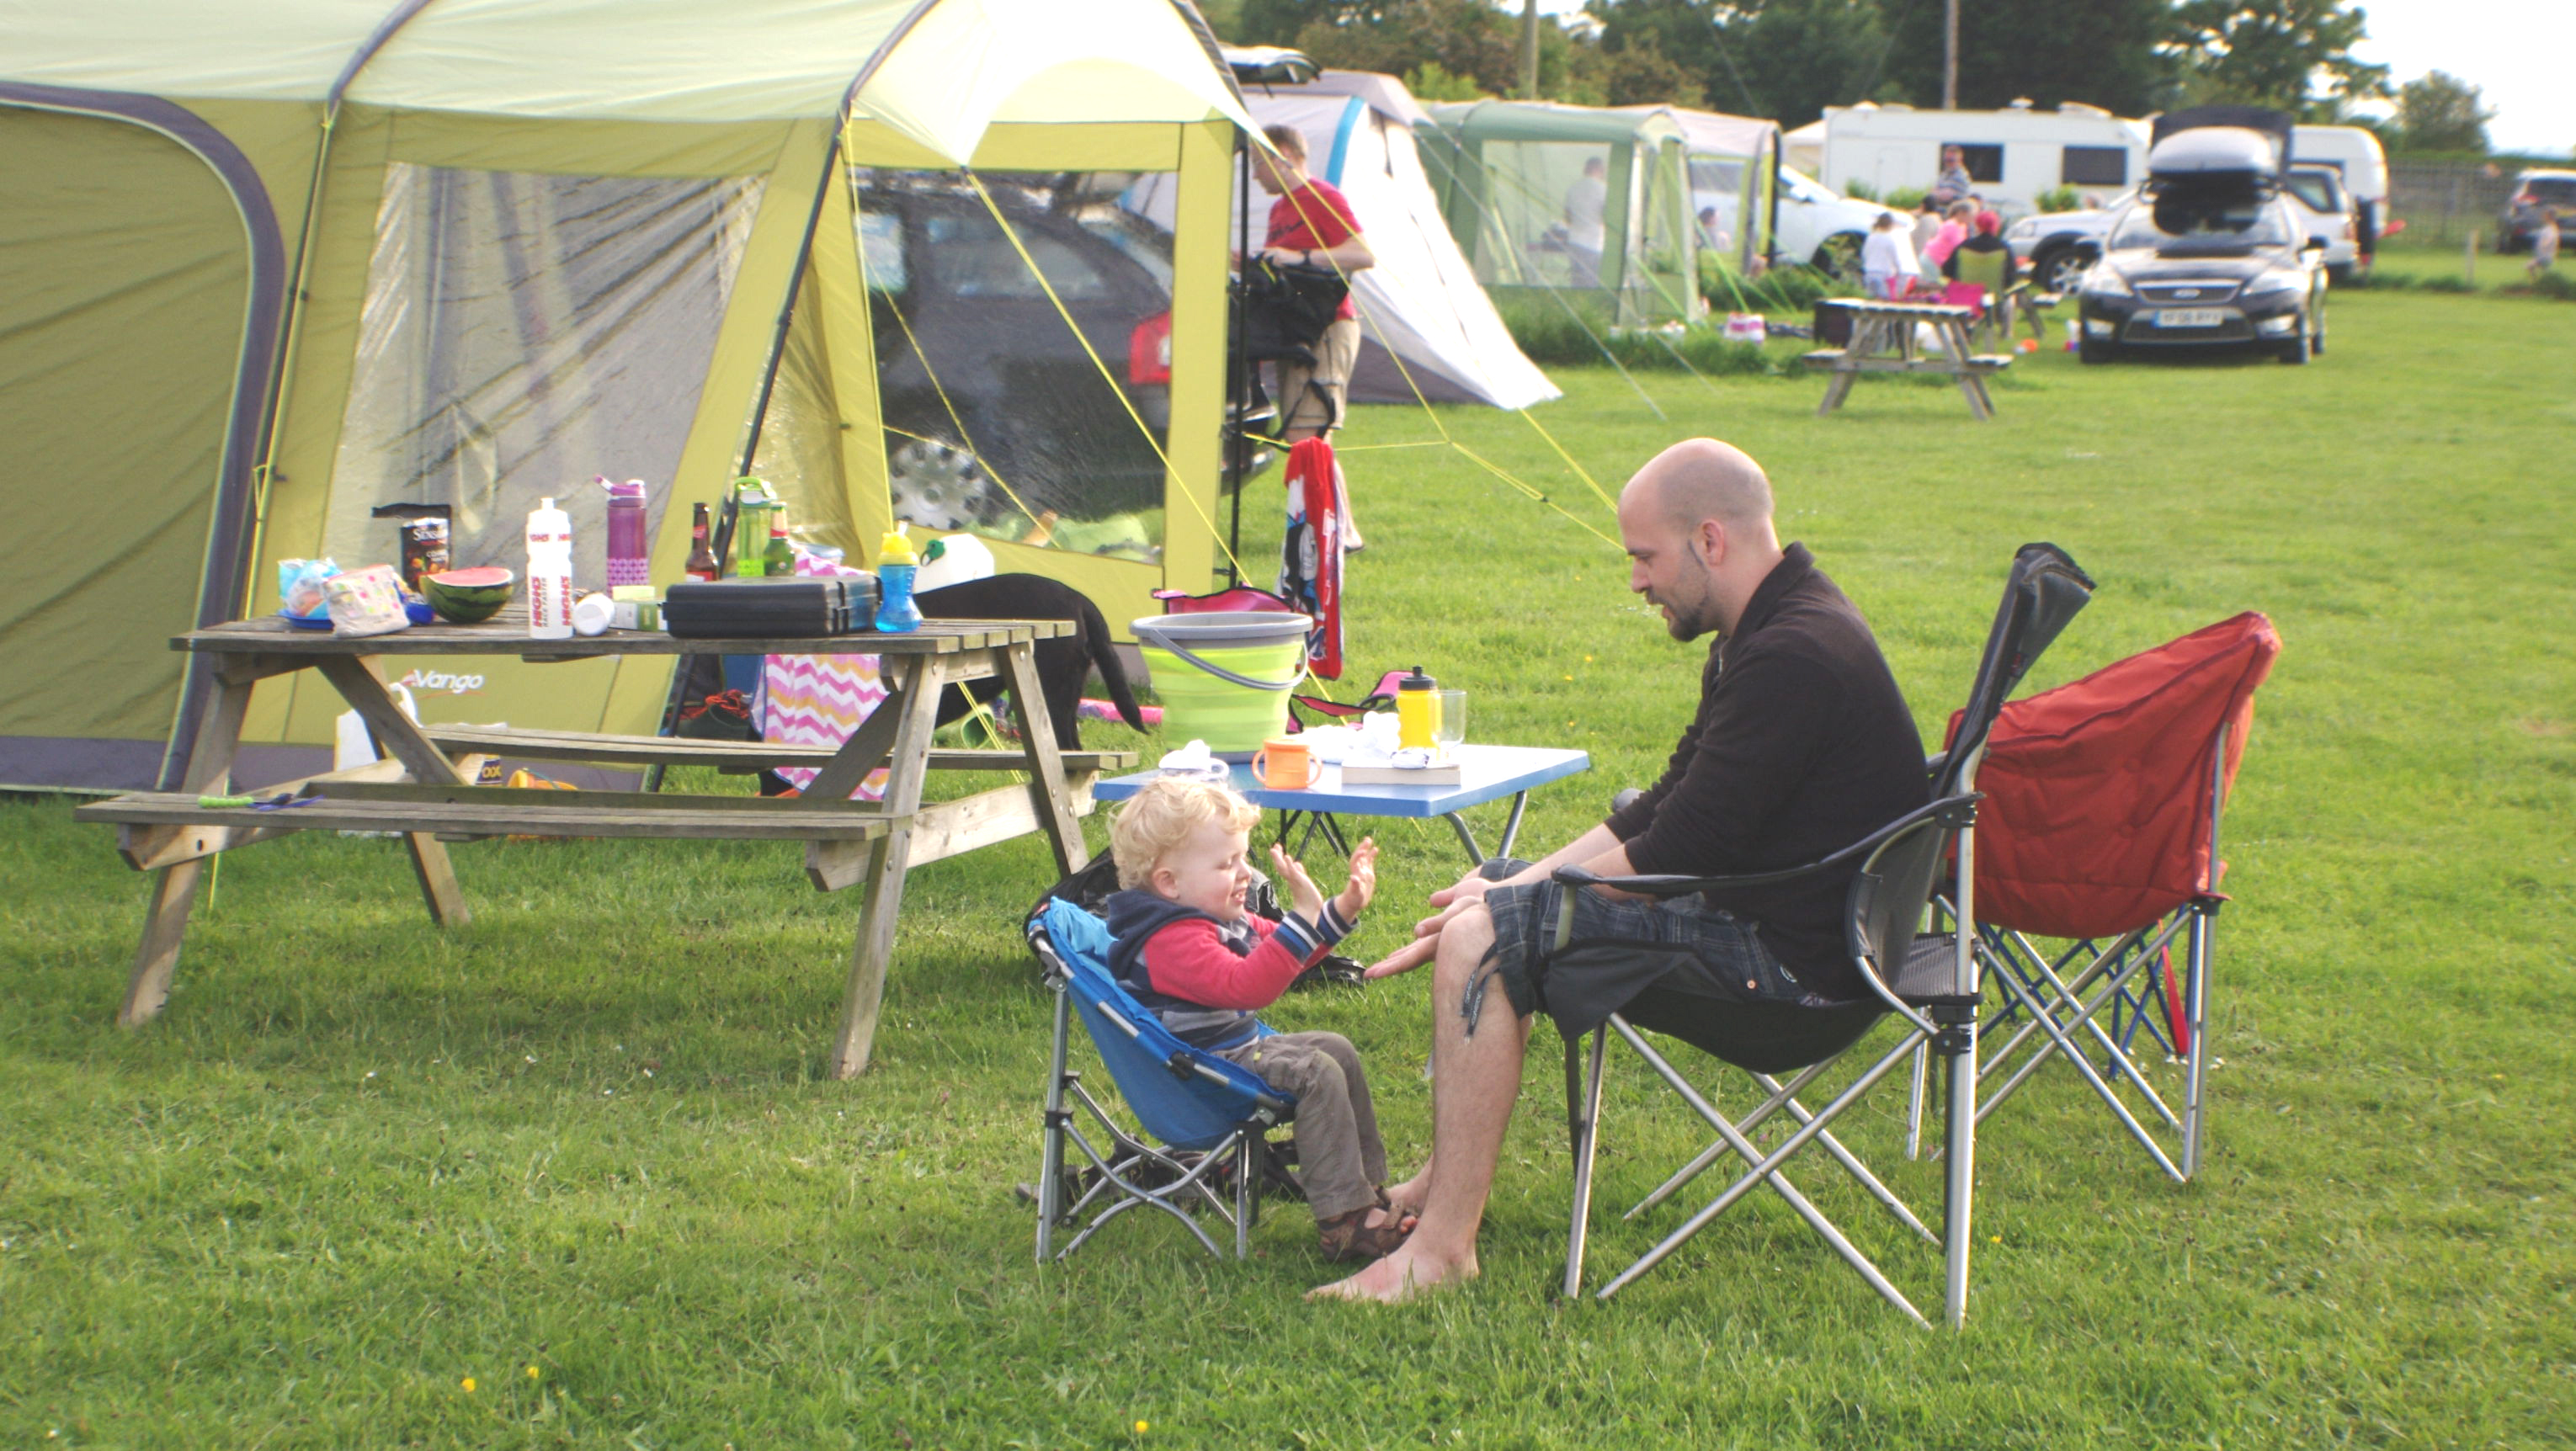 Camping with the Family at Standen Lodge Campsite